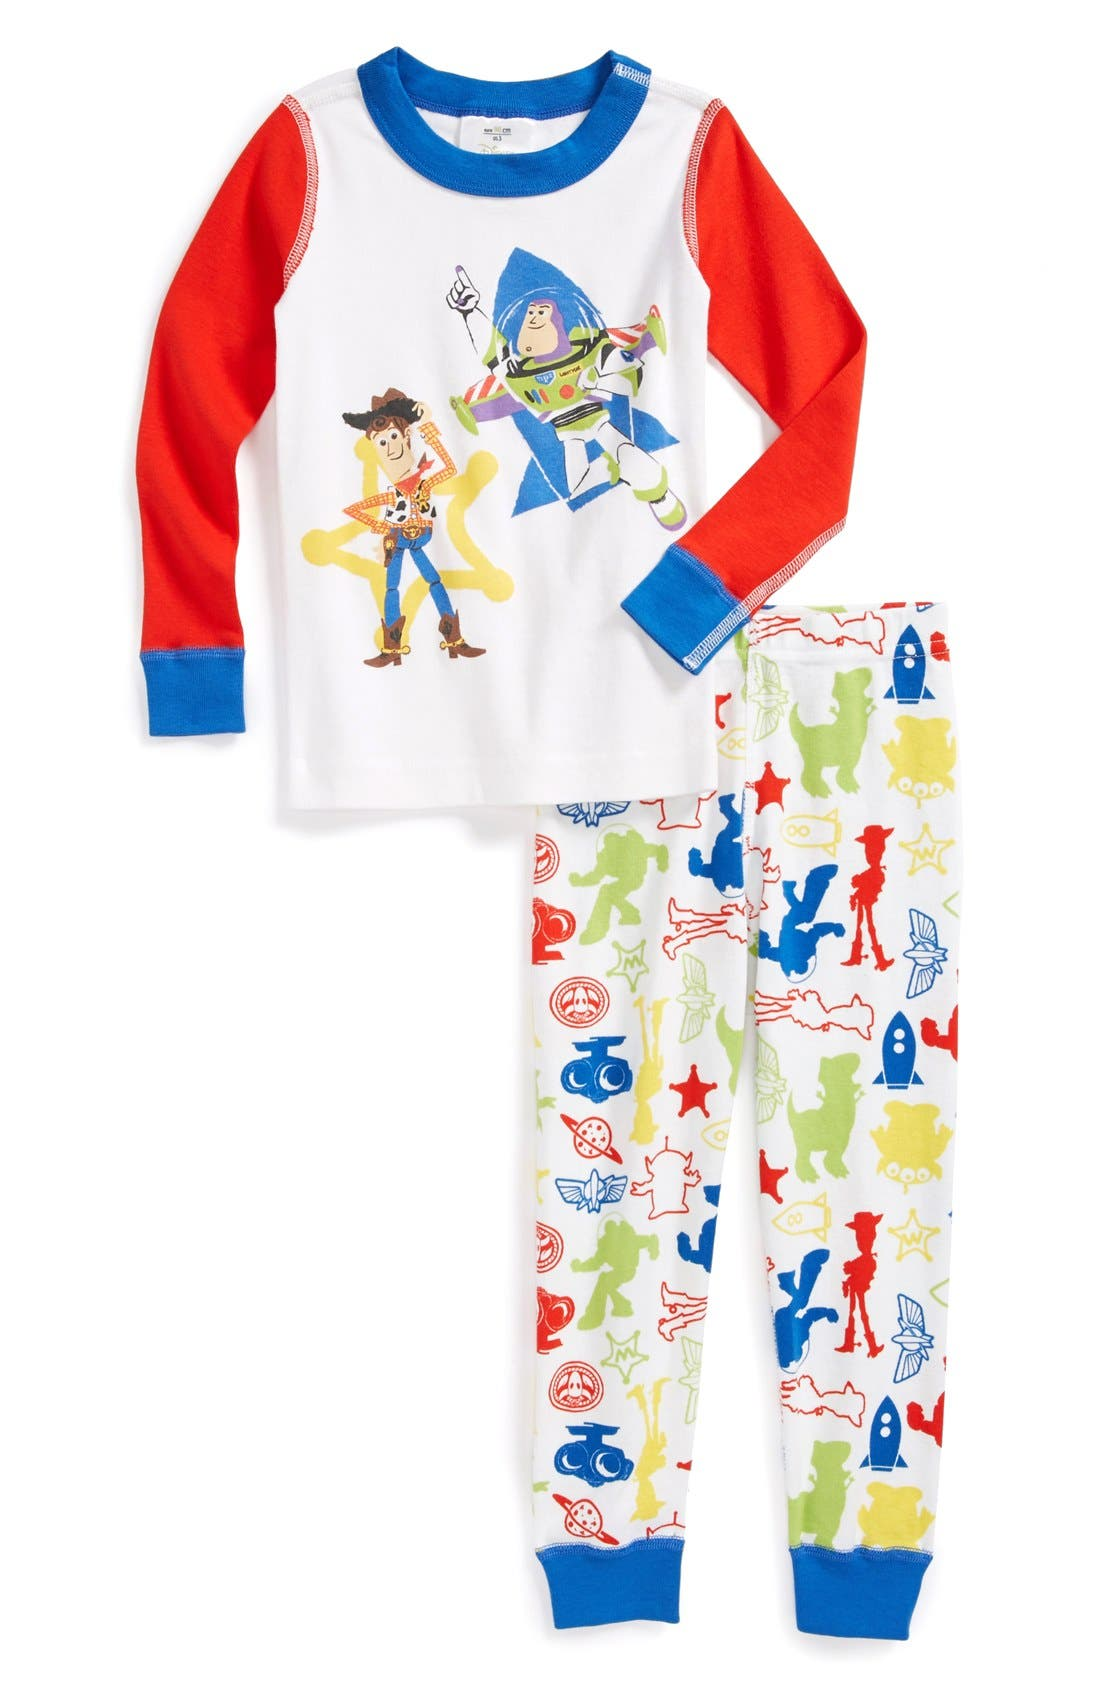 Alternate Image 1 Selected - Hanna Andersson 'Toy Story®' Two-Piece Organic Cotton Fitted Pajamas (Toddler Boys)